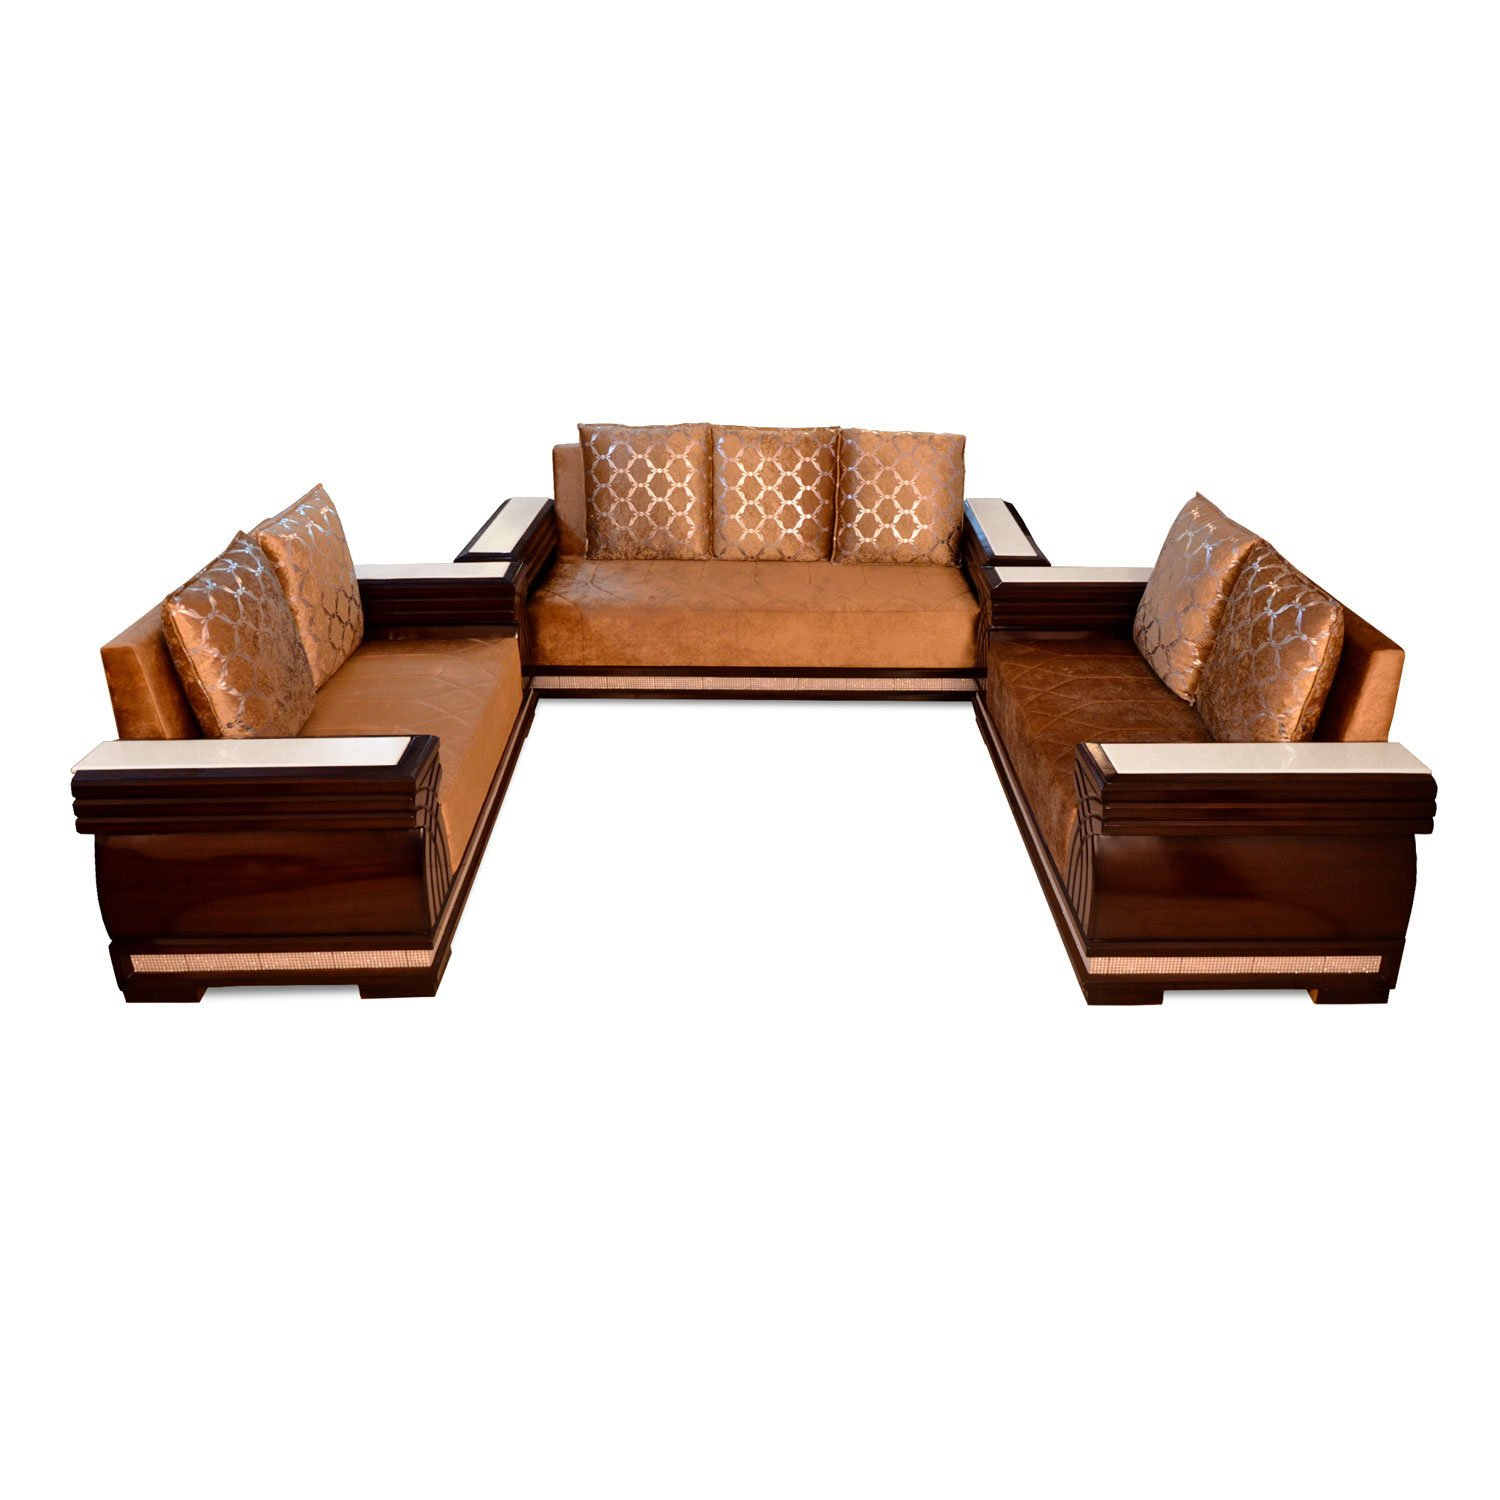 7 Seater Sofa Set, Living Room Furniture Sets, Affordable Sofa Set ...